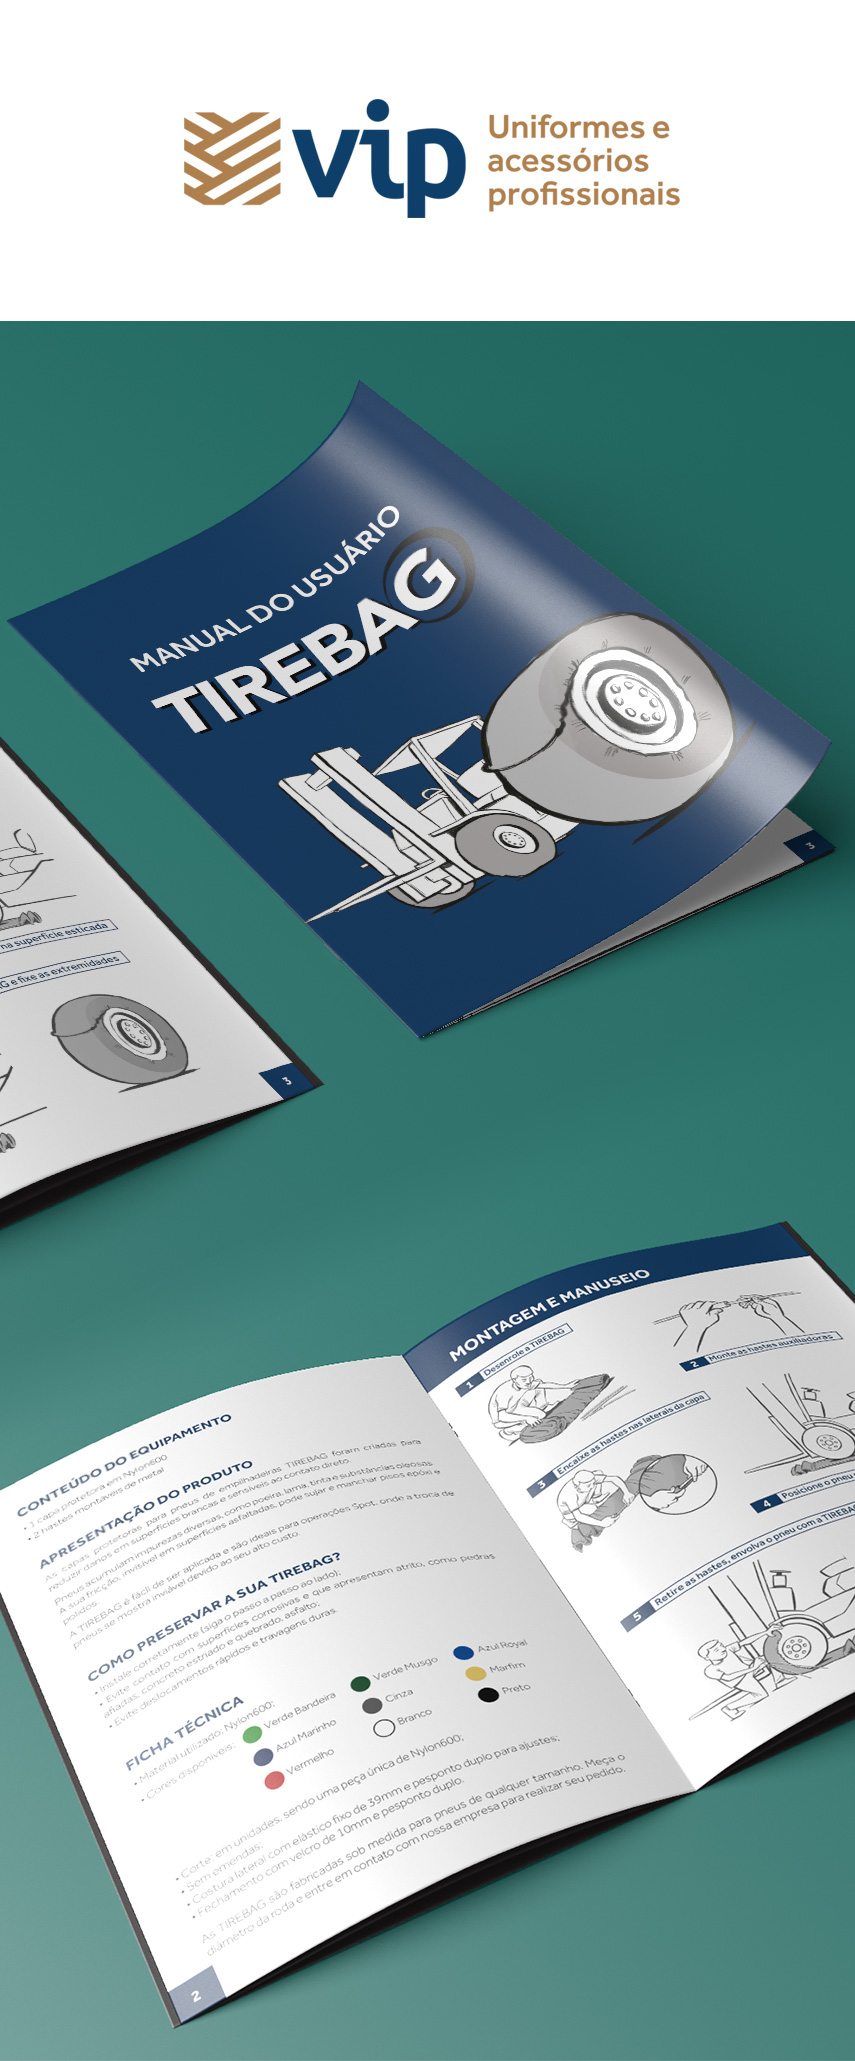 Manual-Tirebag-Blog-Conteudo